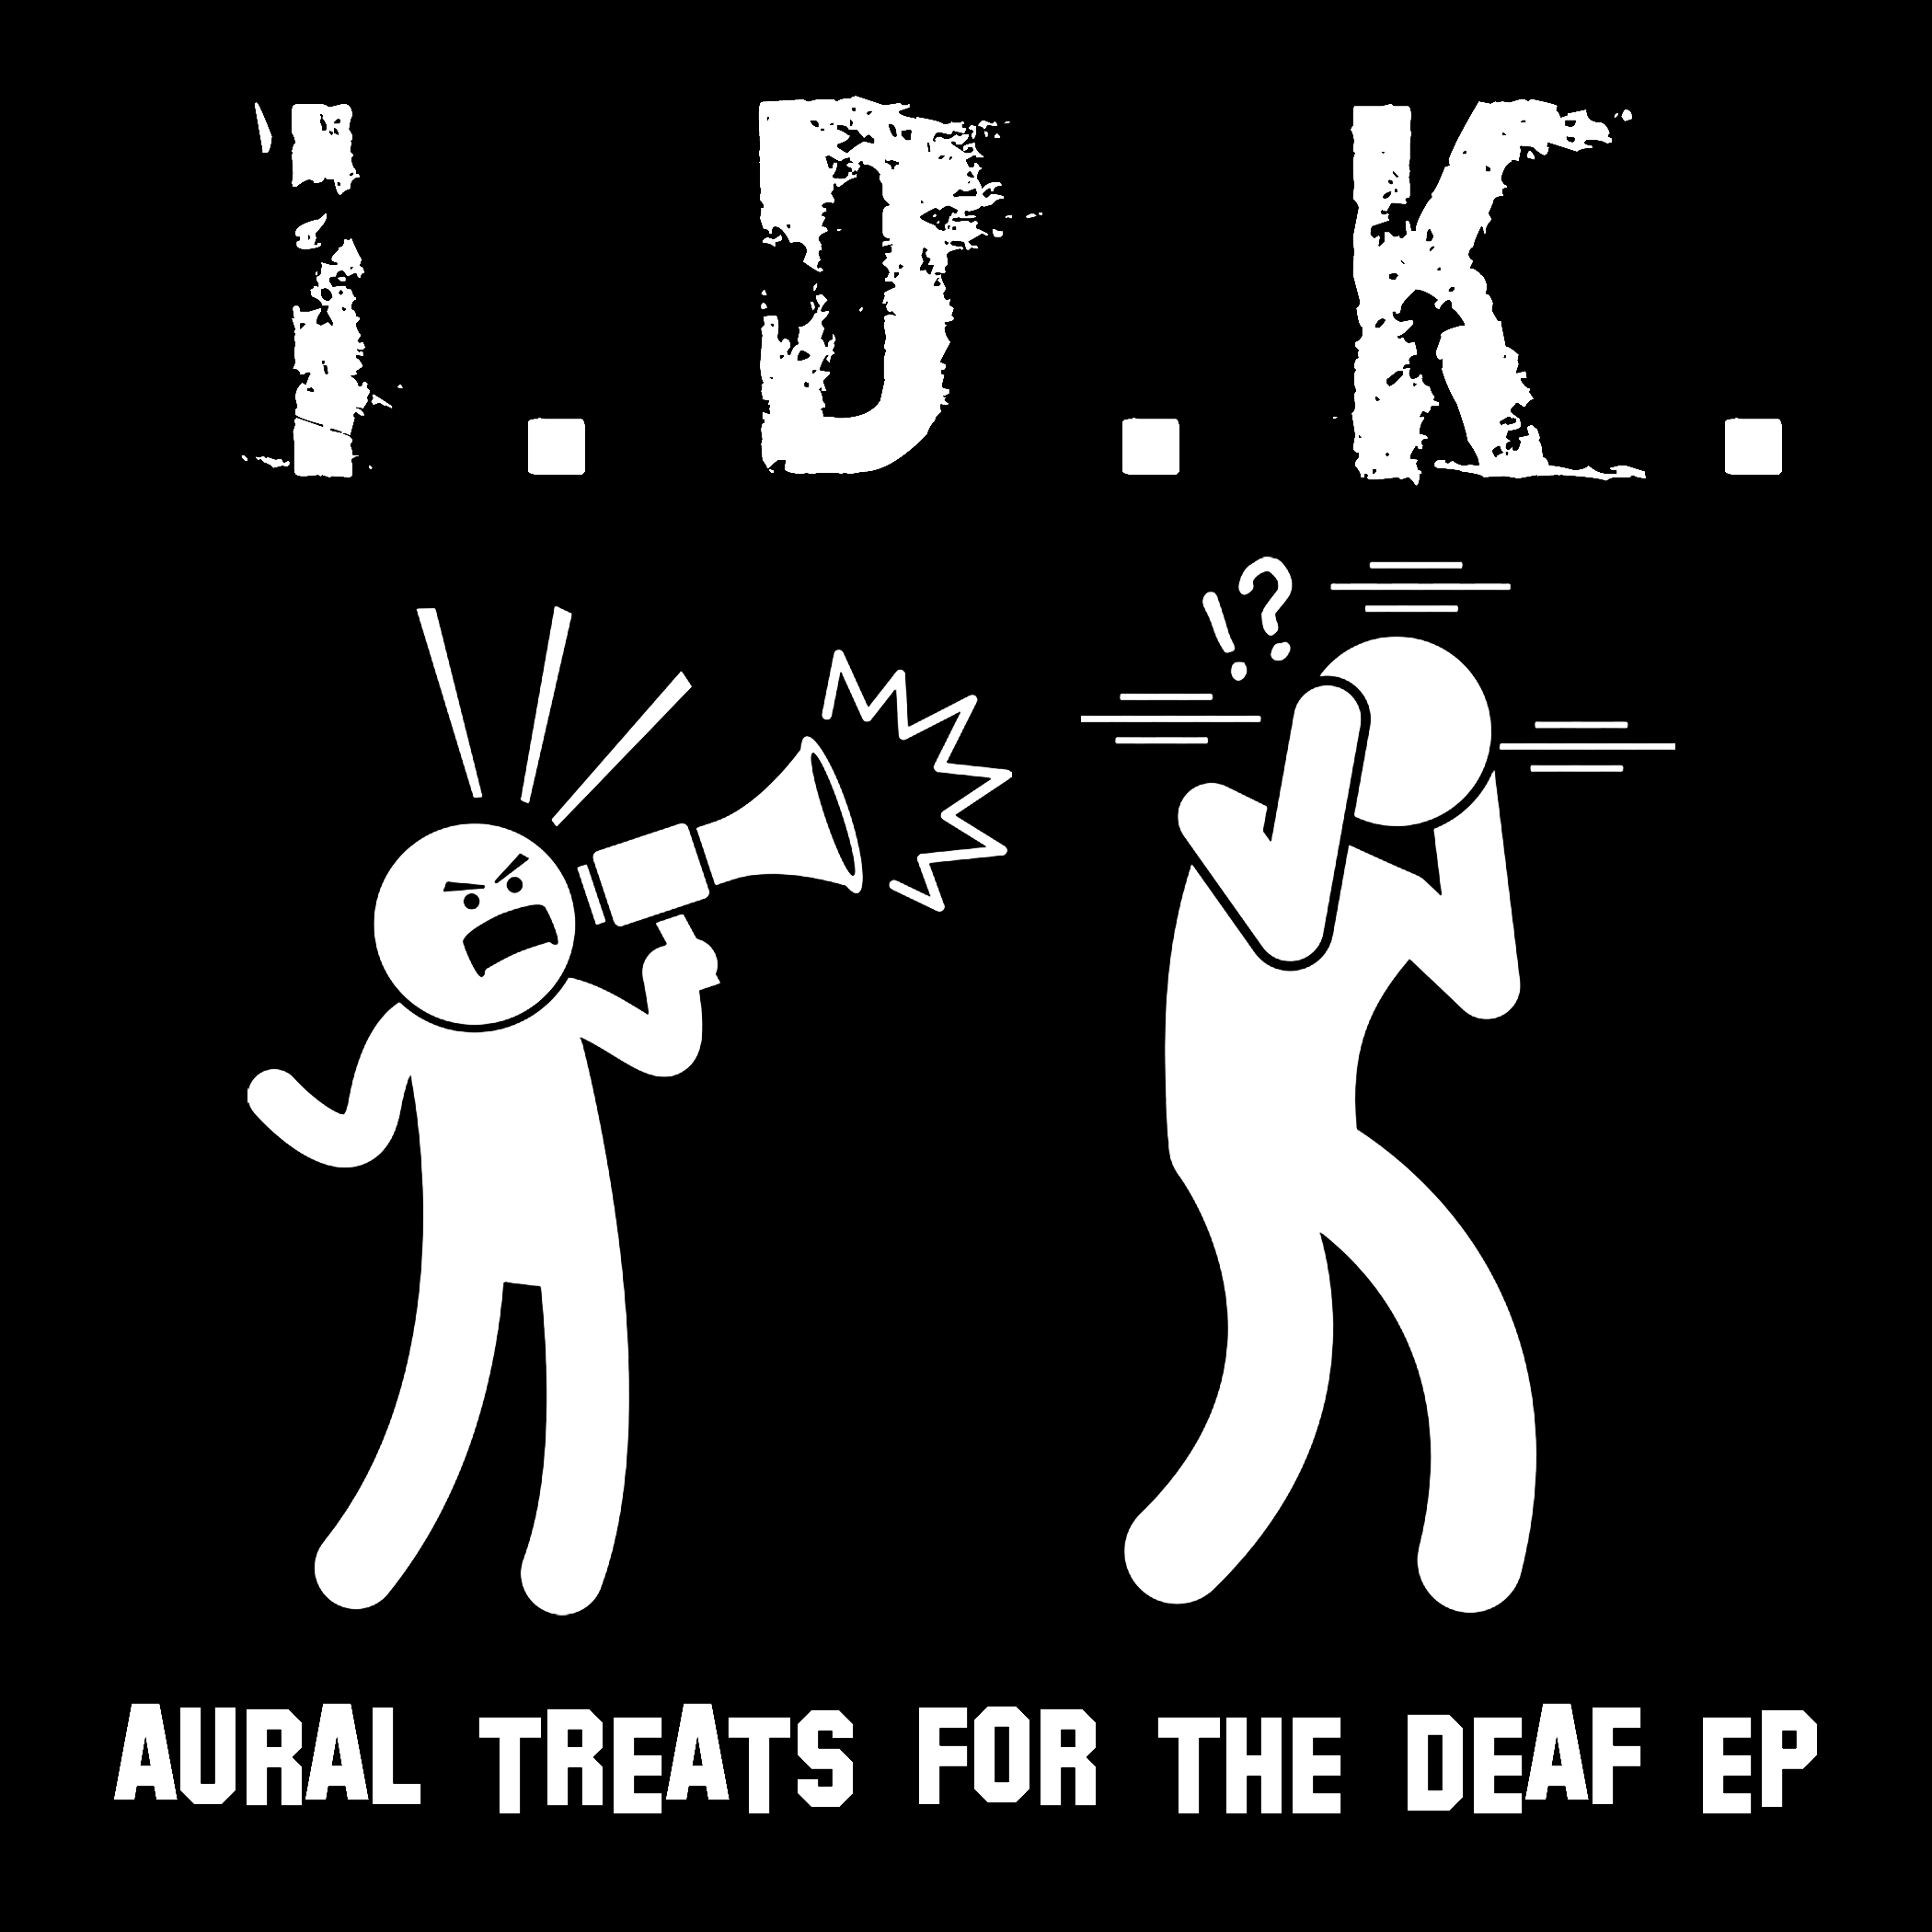 idk--aural-treats-for-the-deaf-ep-volume-1